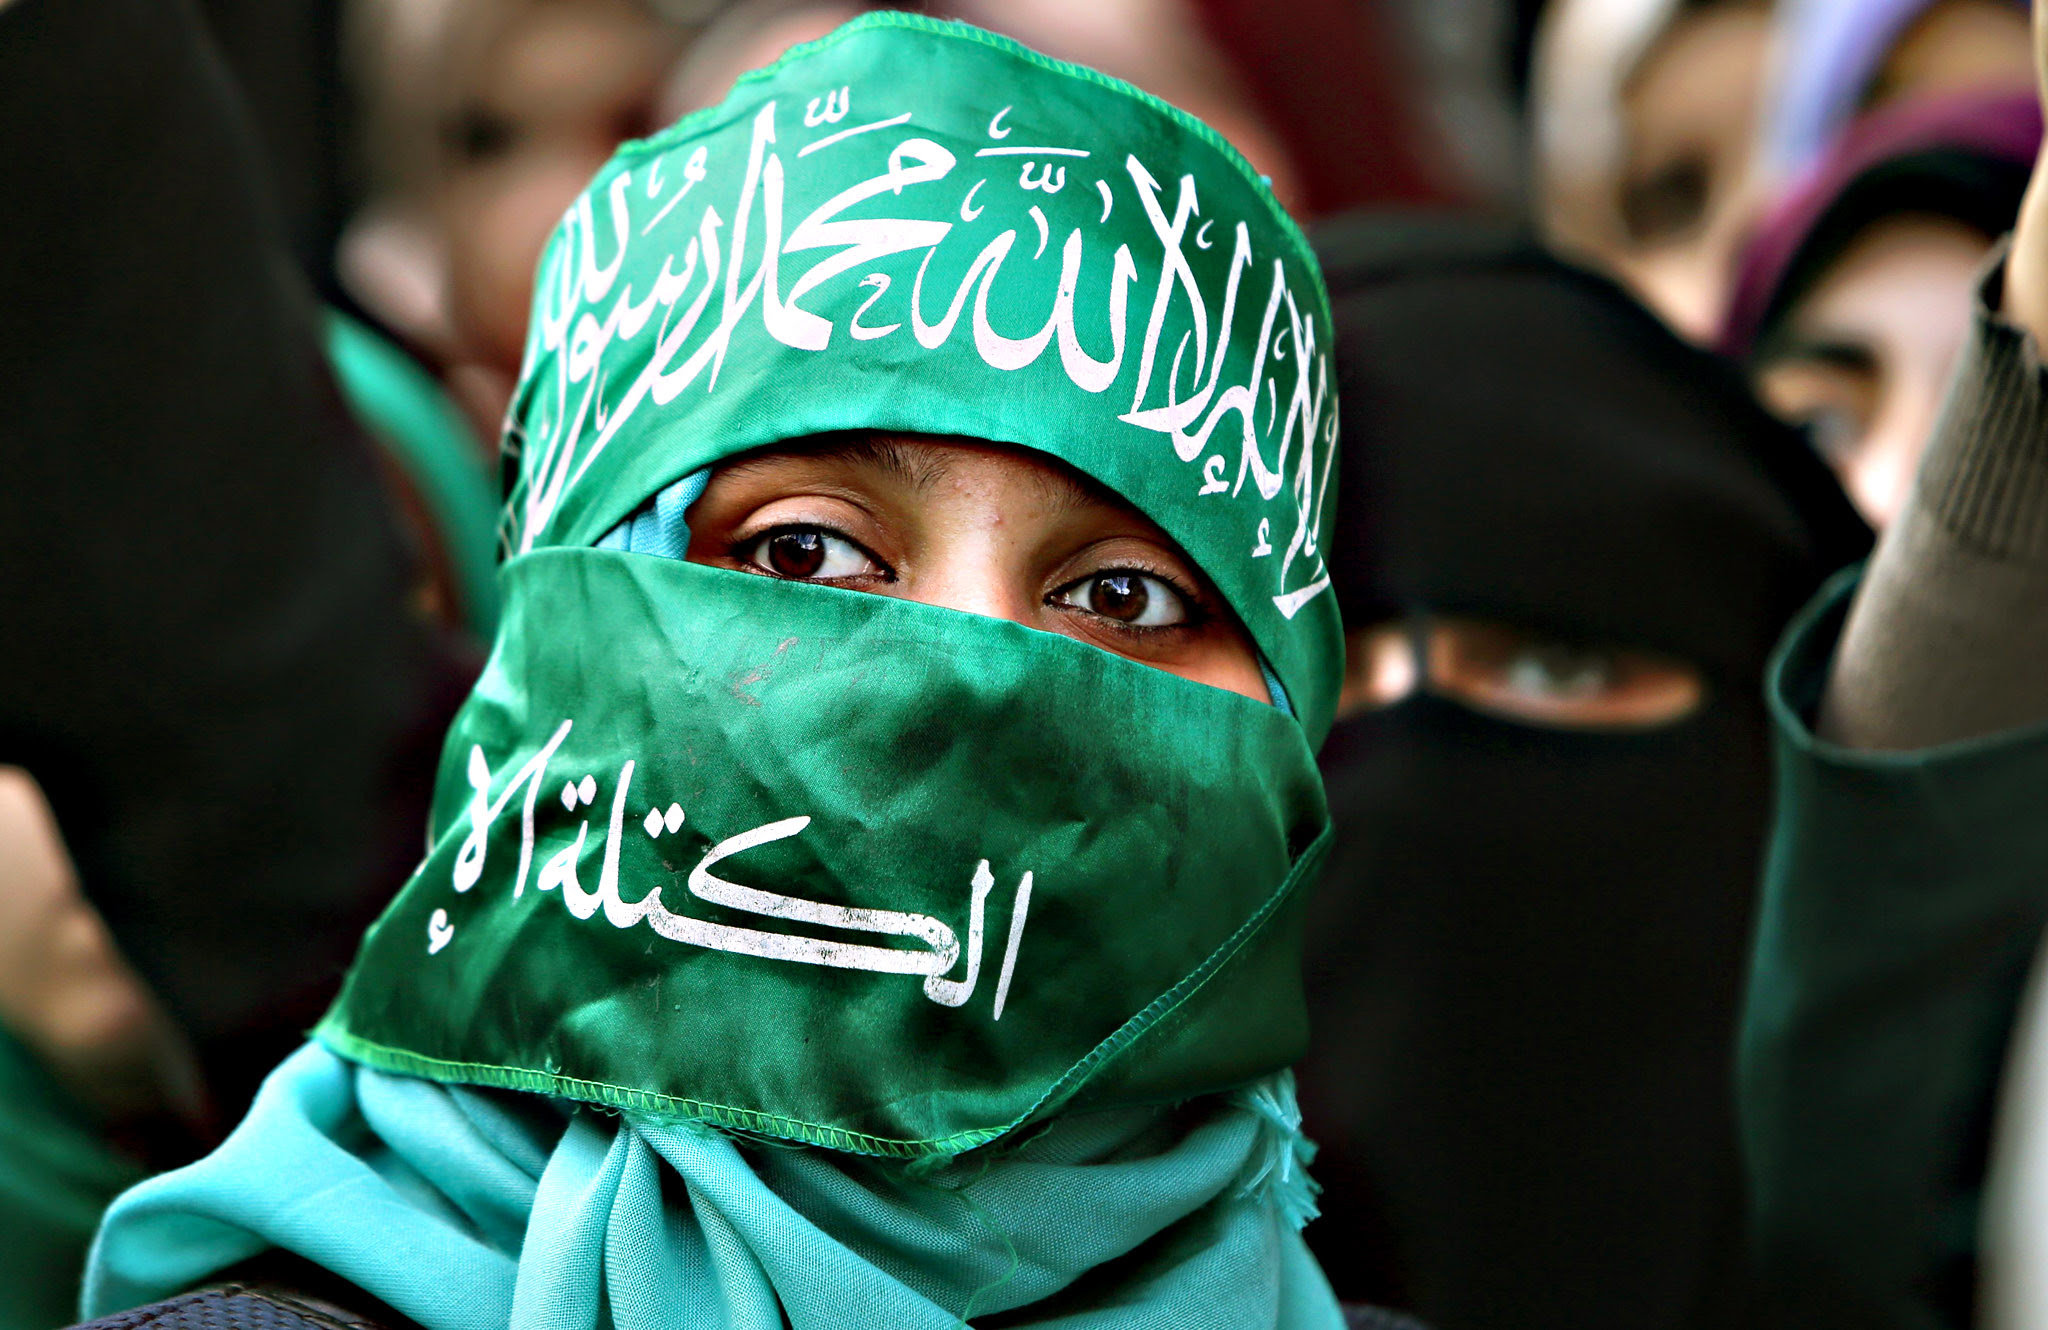 A Palestinian woman supporting the Hamas attends a rally in Gaza City on December 14, 2015, to mark the ruling Islamist movement's 28th birthday